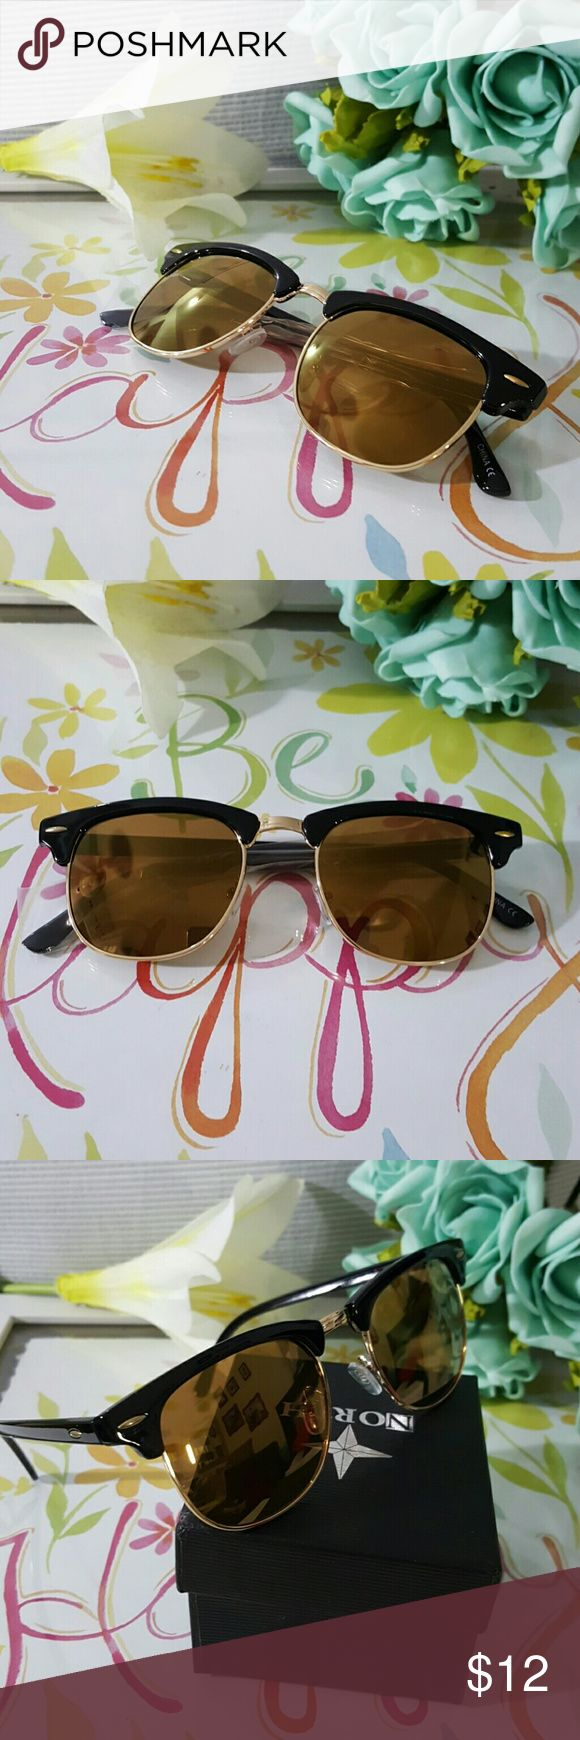 CLUBMASTER STYLE FASHION UNISEX SUNGLASSES 50's Re CLUBMASTER STYLE FASHION UNISEX SUNGLASSES 50's Retro Vintage Semi Rimless Clubmaster Men Women Sunglasses Shades 100% UV400 Protection Against Harmful UVA/UVB Driving  Tags :  Also check my whole closet